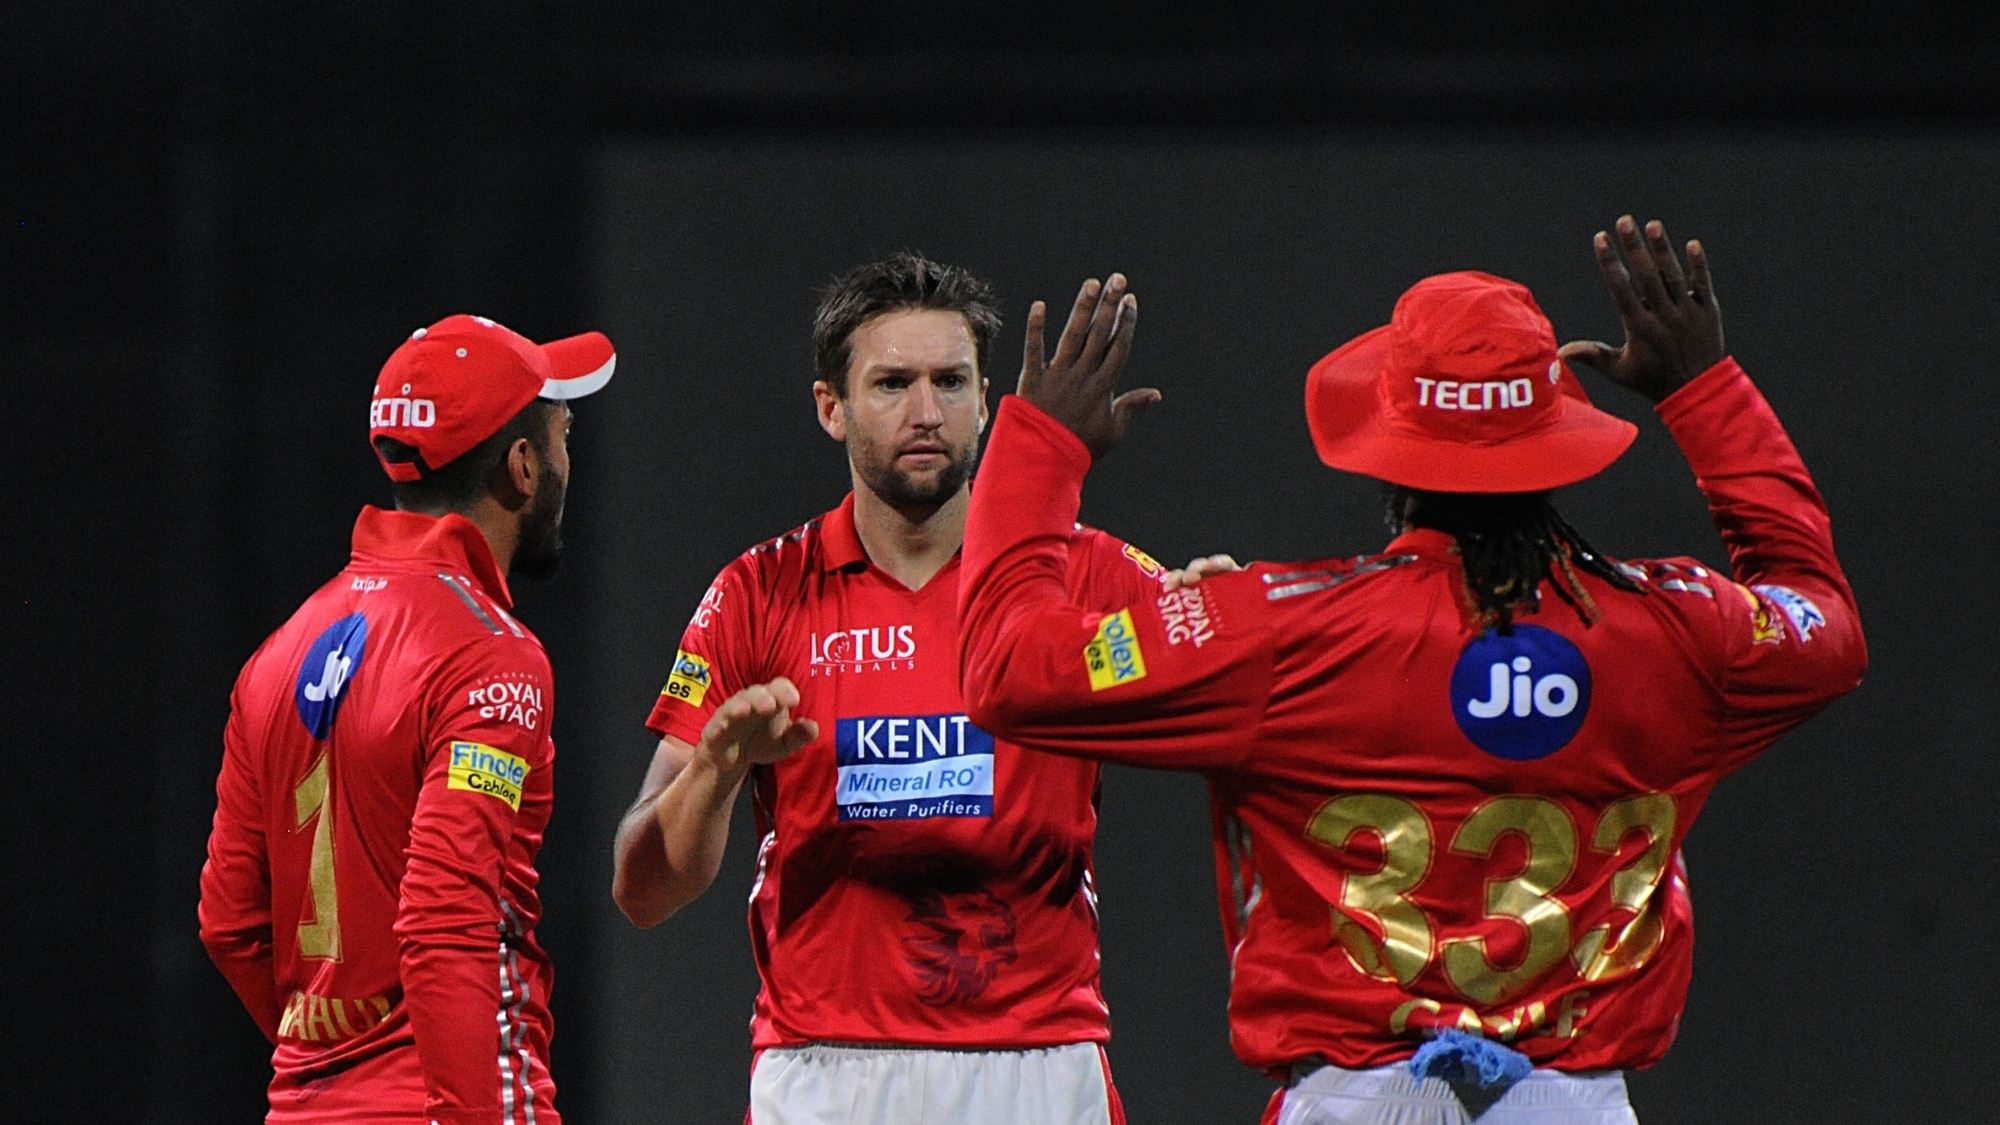 IPL 2018: Loss against MI, bitterly disappointing for Kings XI Punjab, says Andrew Tye